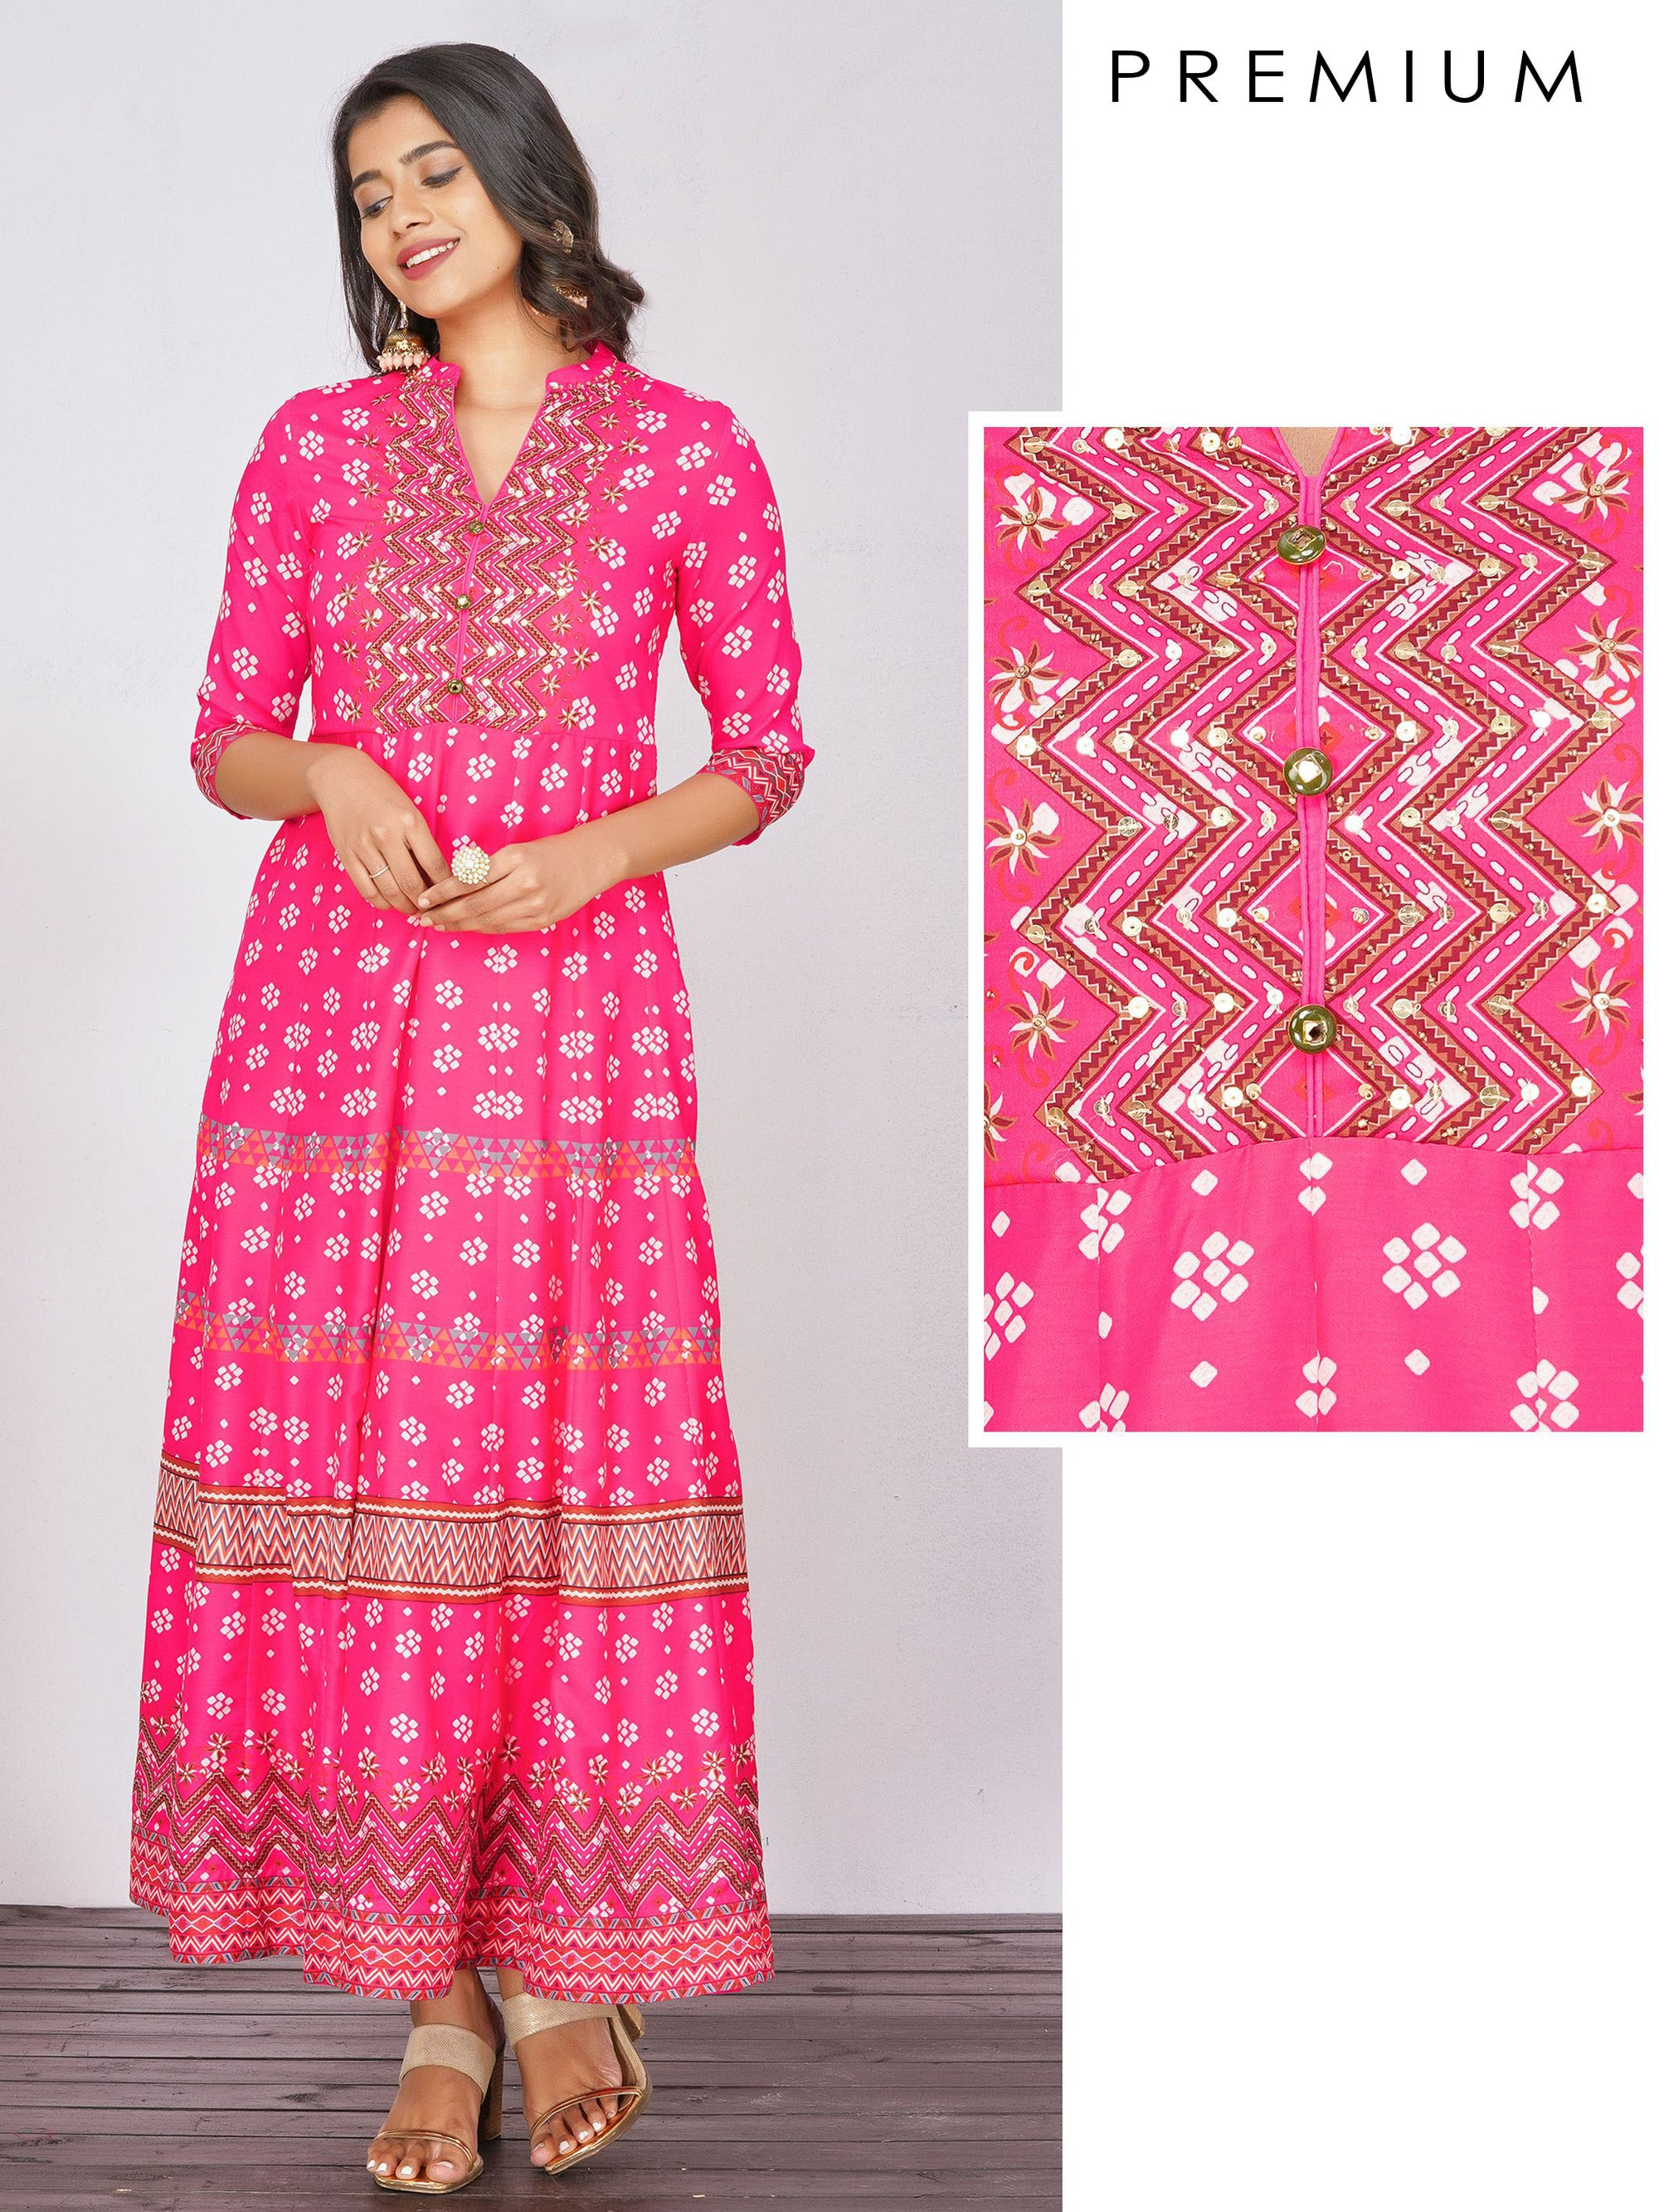 Sequins Adorned, Chevron Printed Premium Anarkali